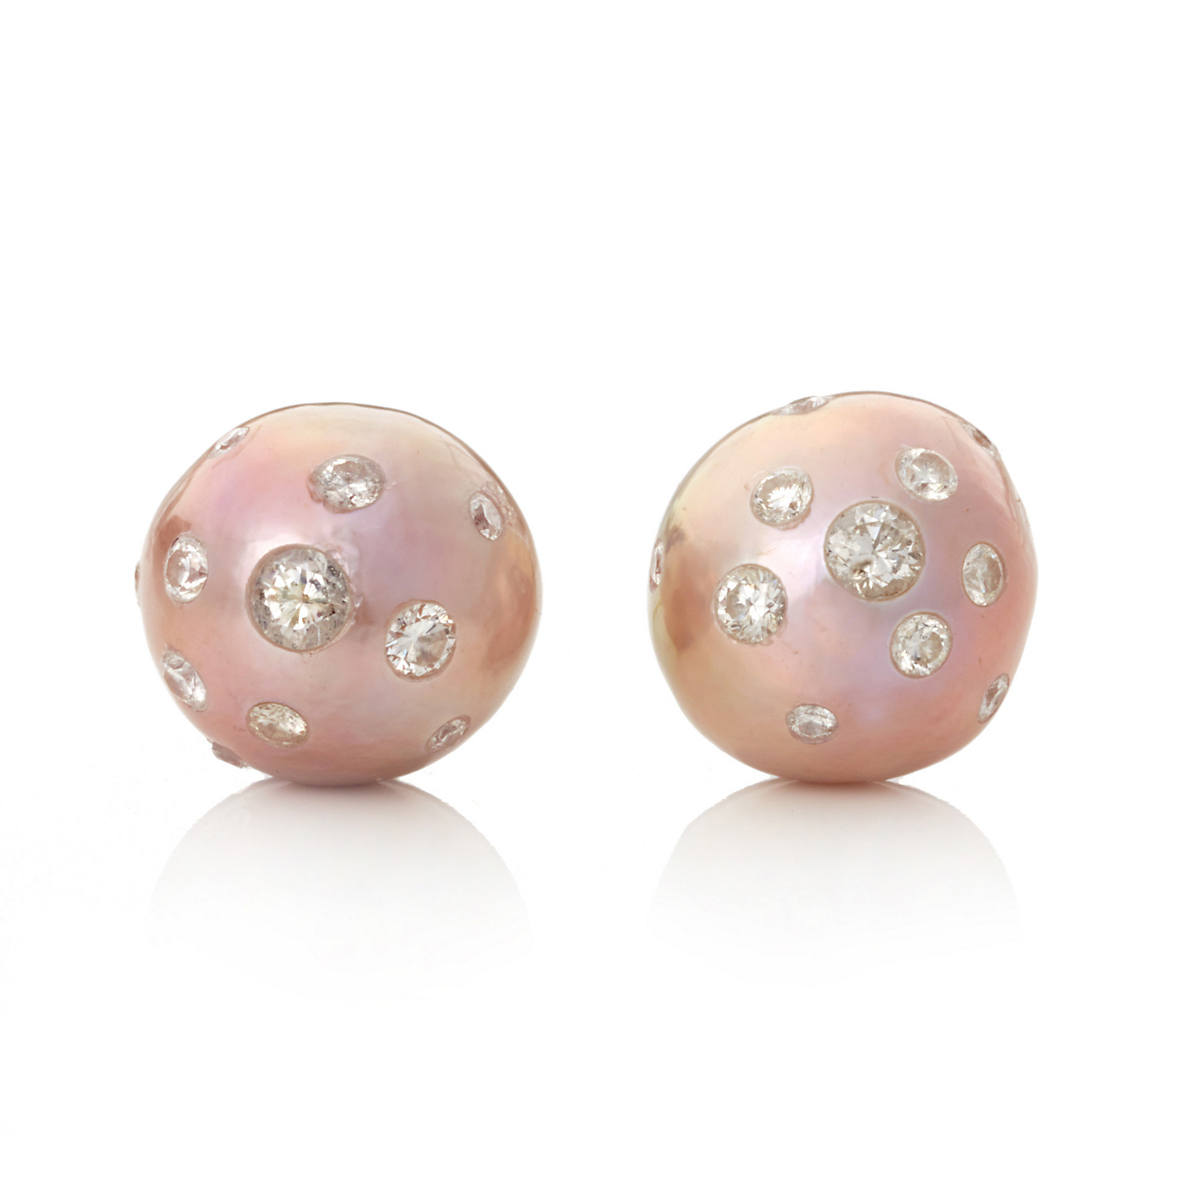 Gump's Freshwater Cultured Pearl with Diamond Earrings